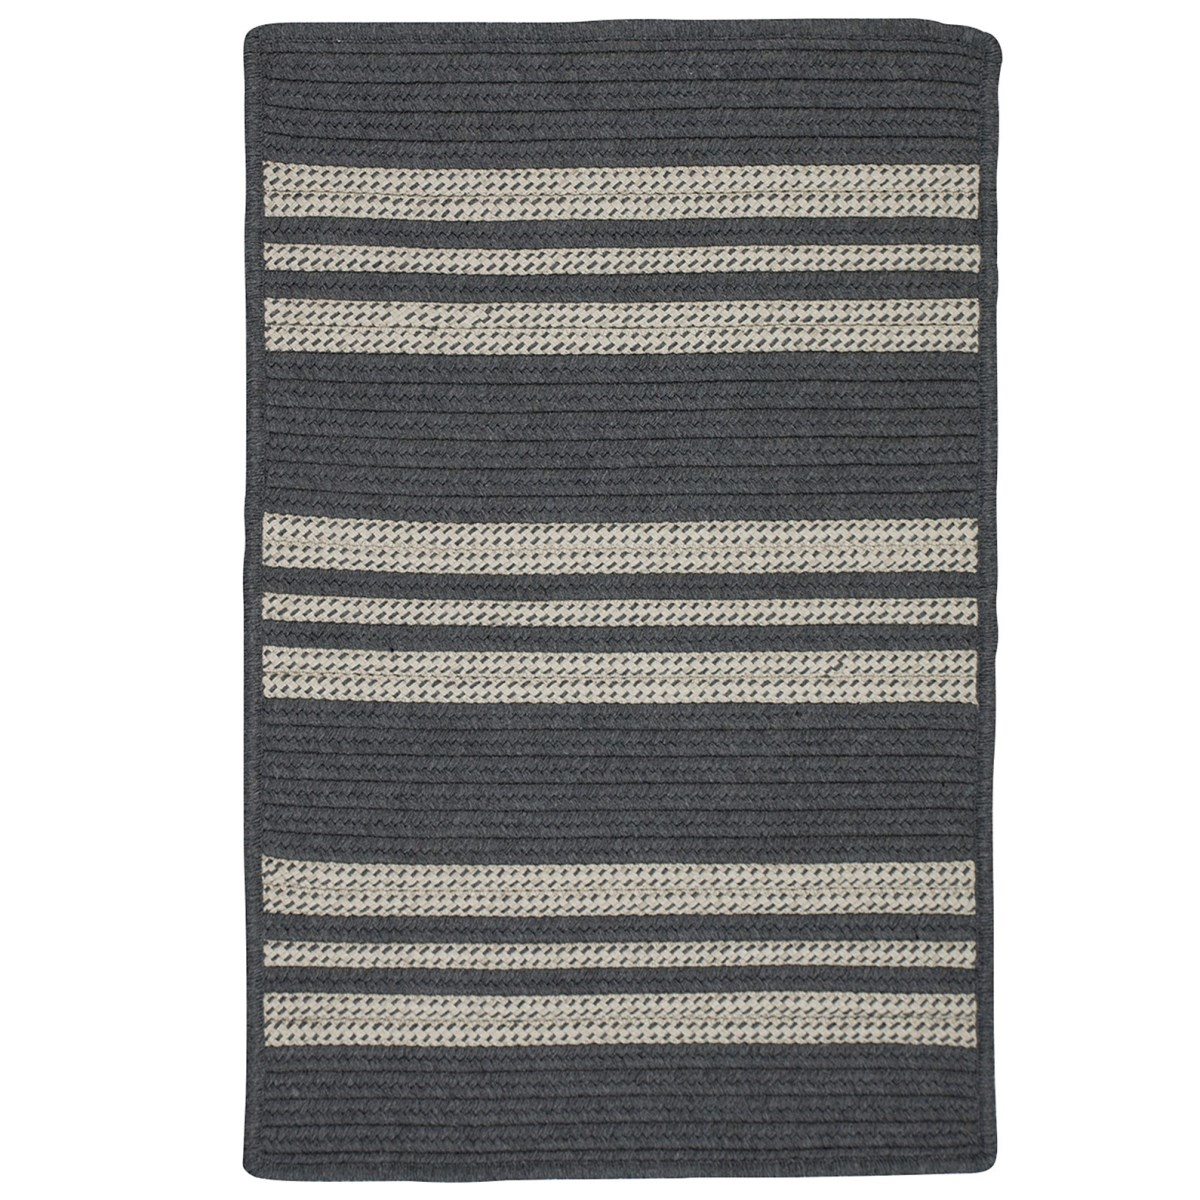 Sunbrella Southport Stripe Granite Outdoor Braided Rectangular Rugs